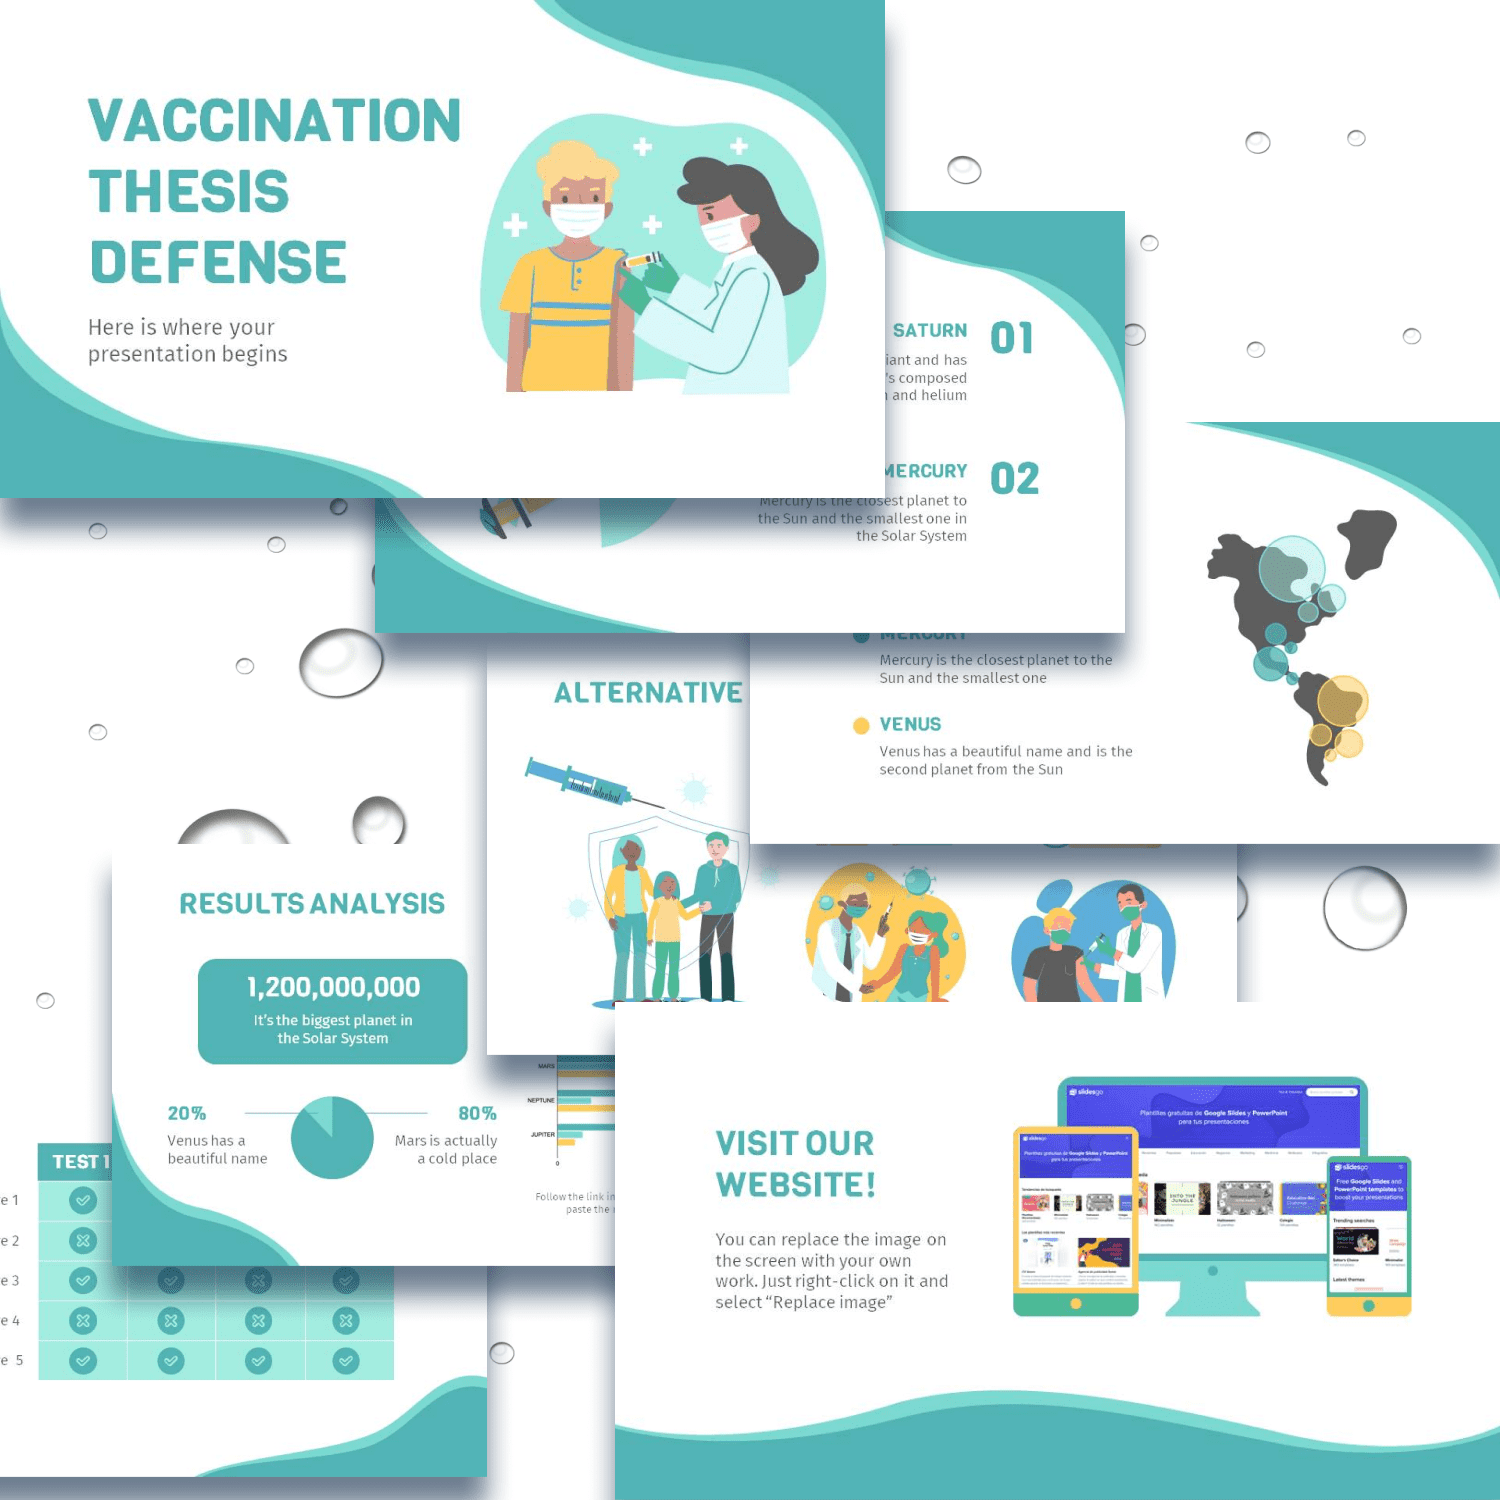 Vaccination Thesis Defense.